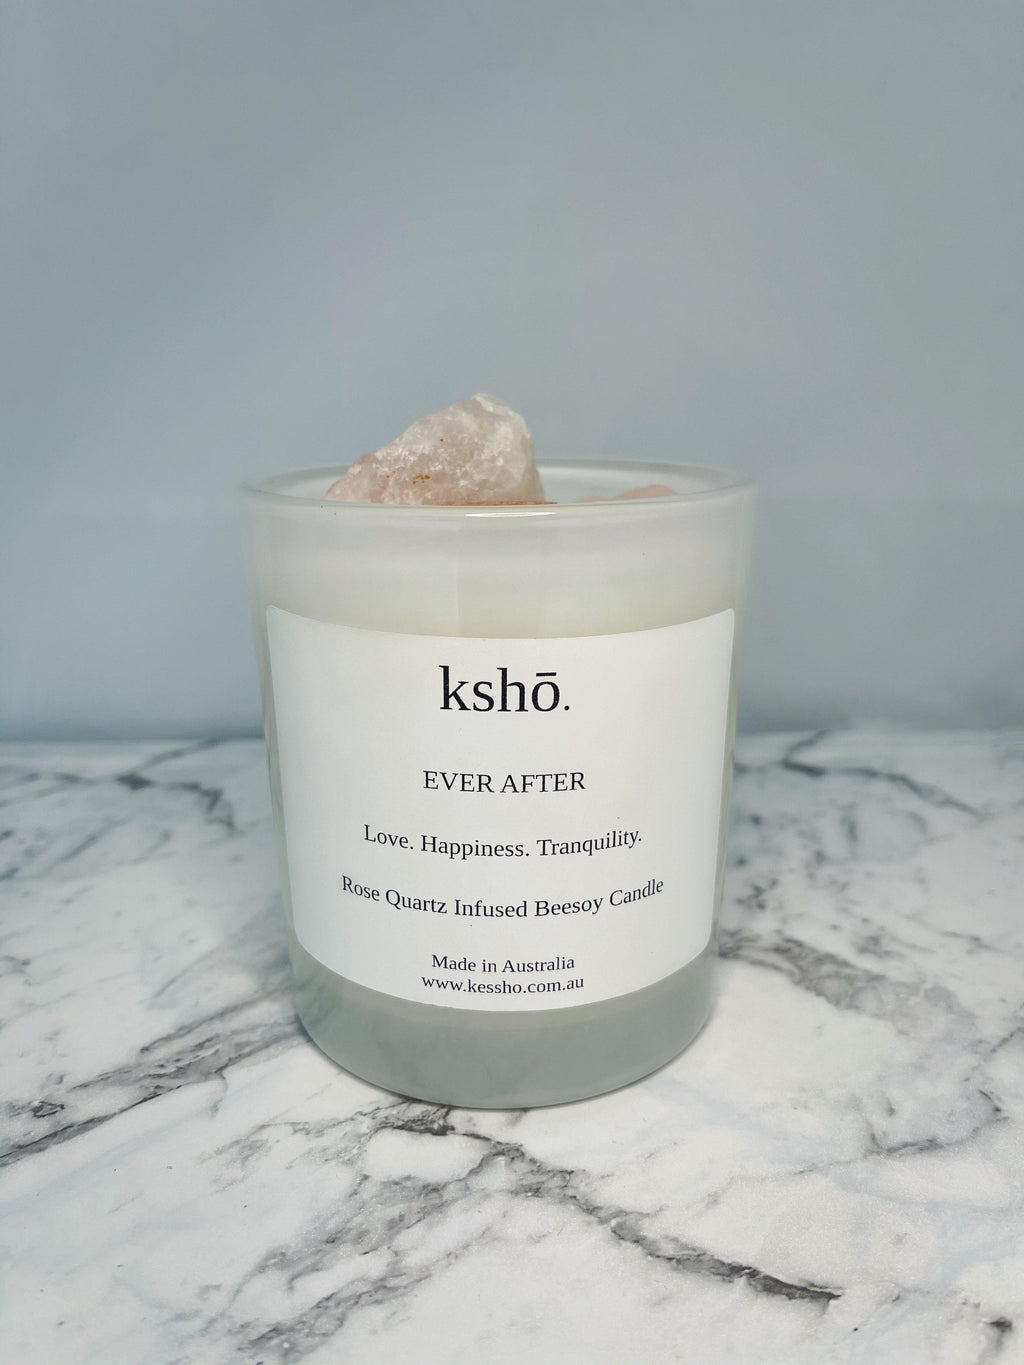 Rose Quartz Infused Beesoy Candle